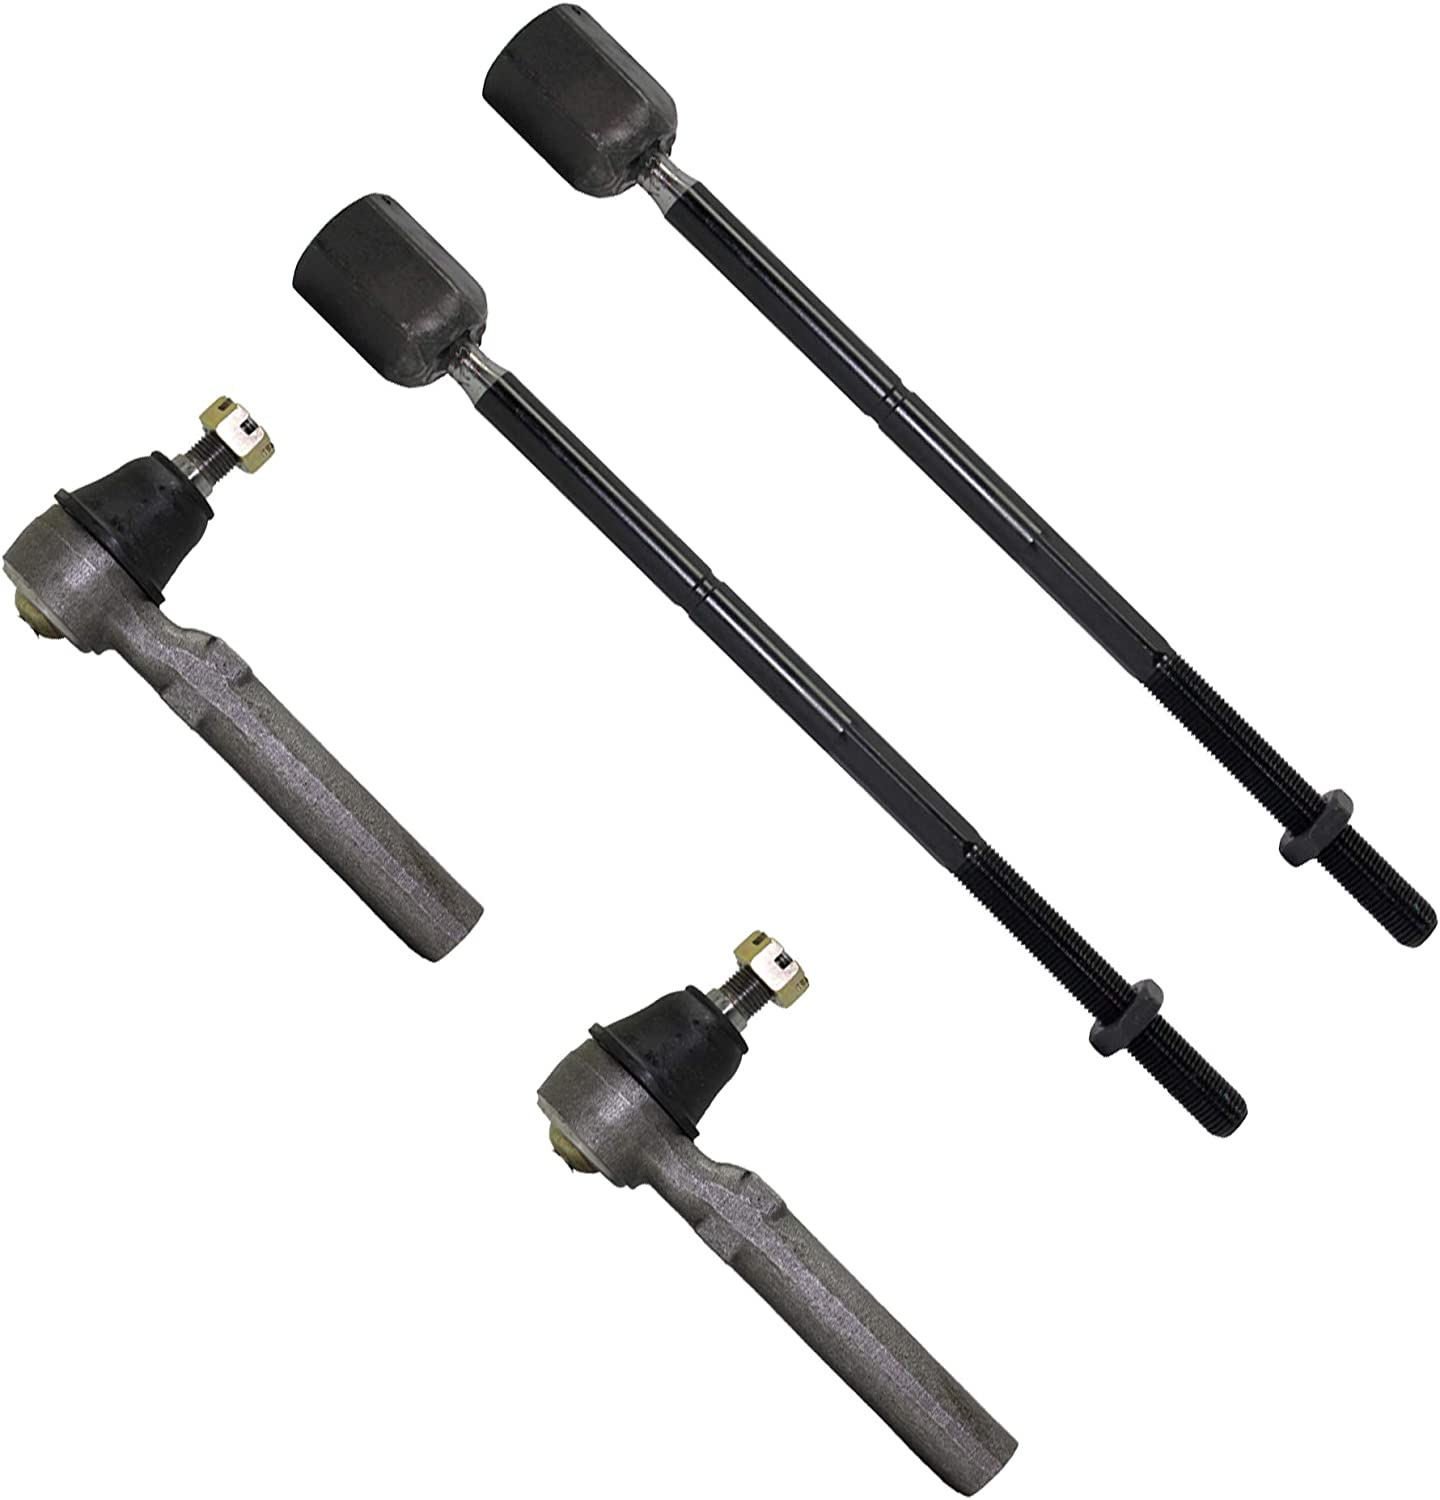 2 Front Lower Ball Joints for 1994 1995 1996 1997 1998 1999 2000 2001 2002 2003 2004 Ford Mustang Detroit Axle Pair